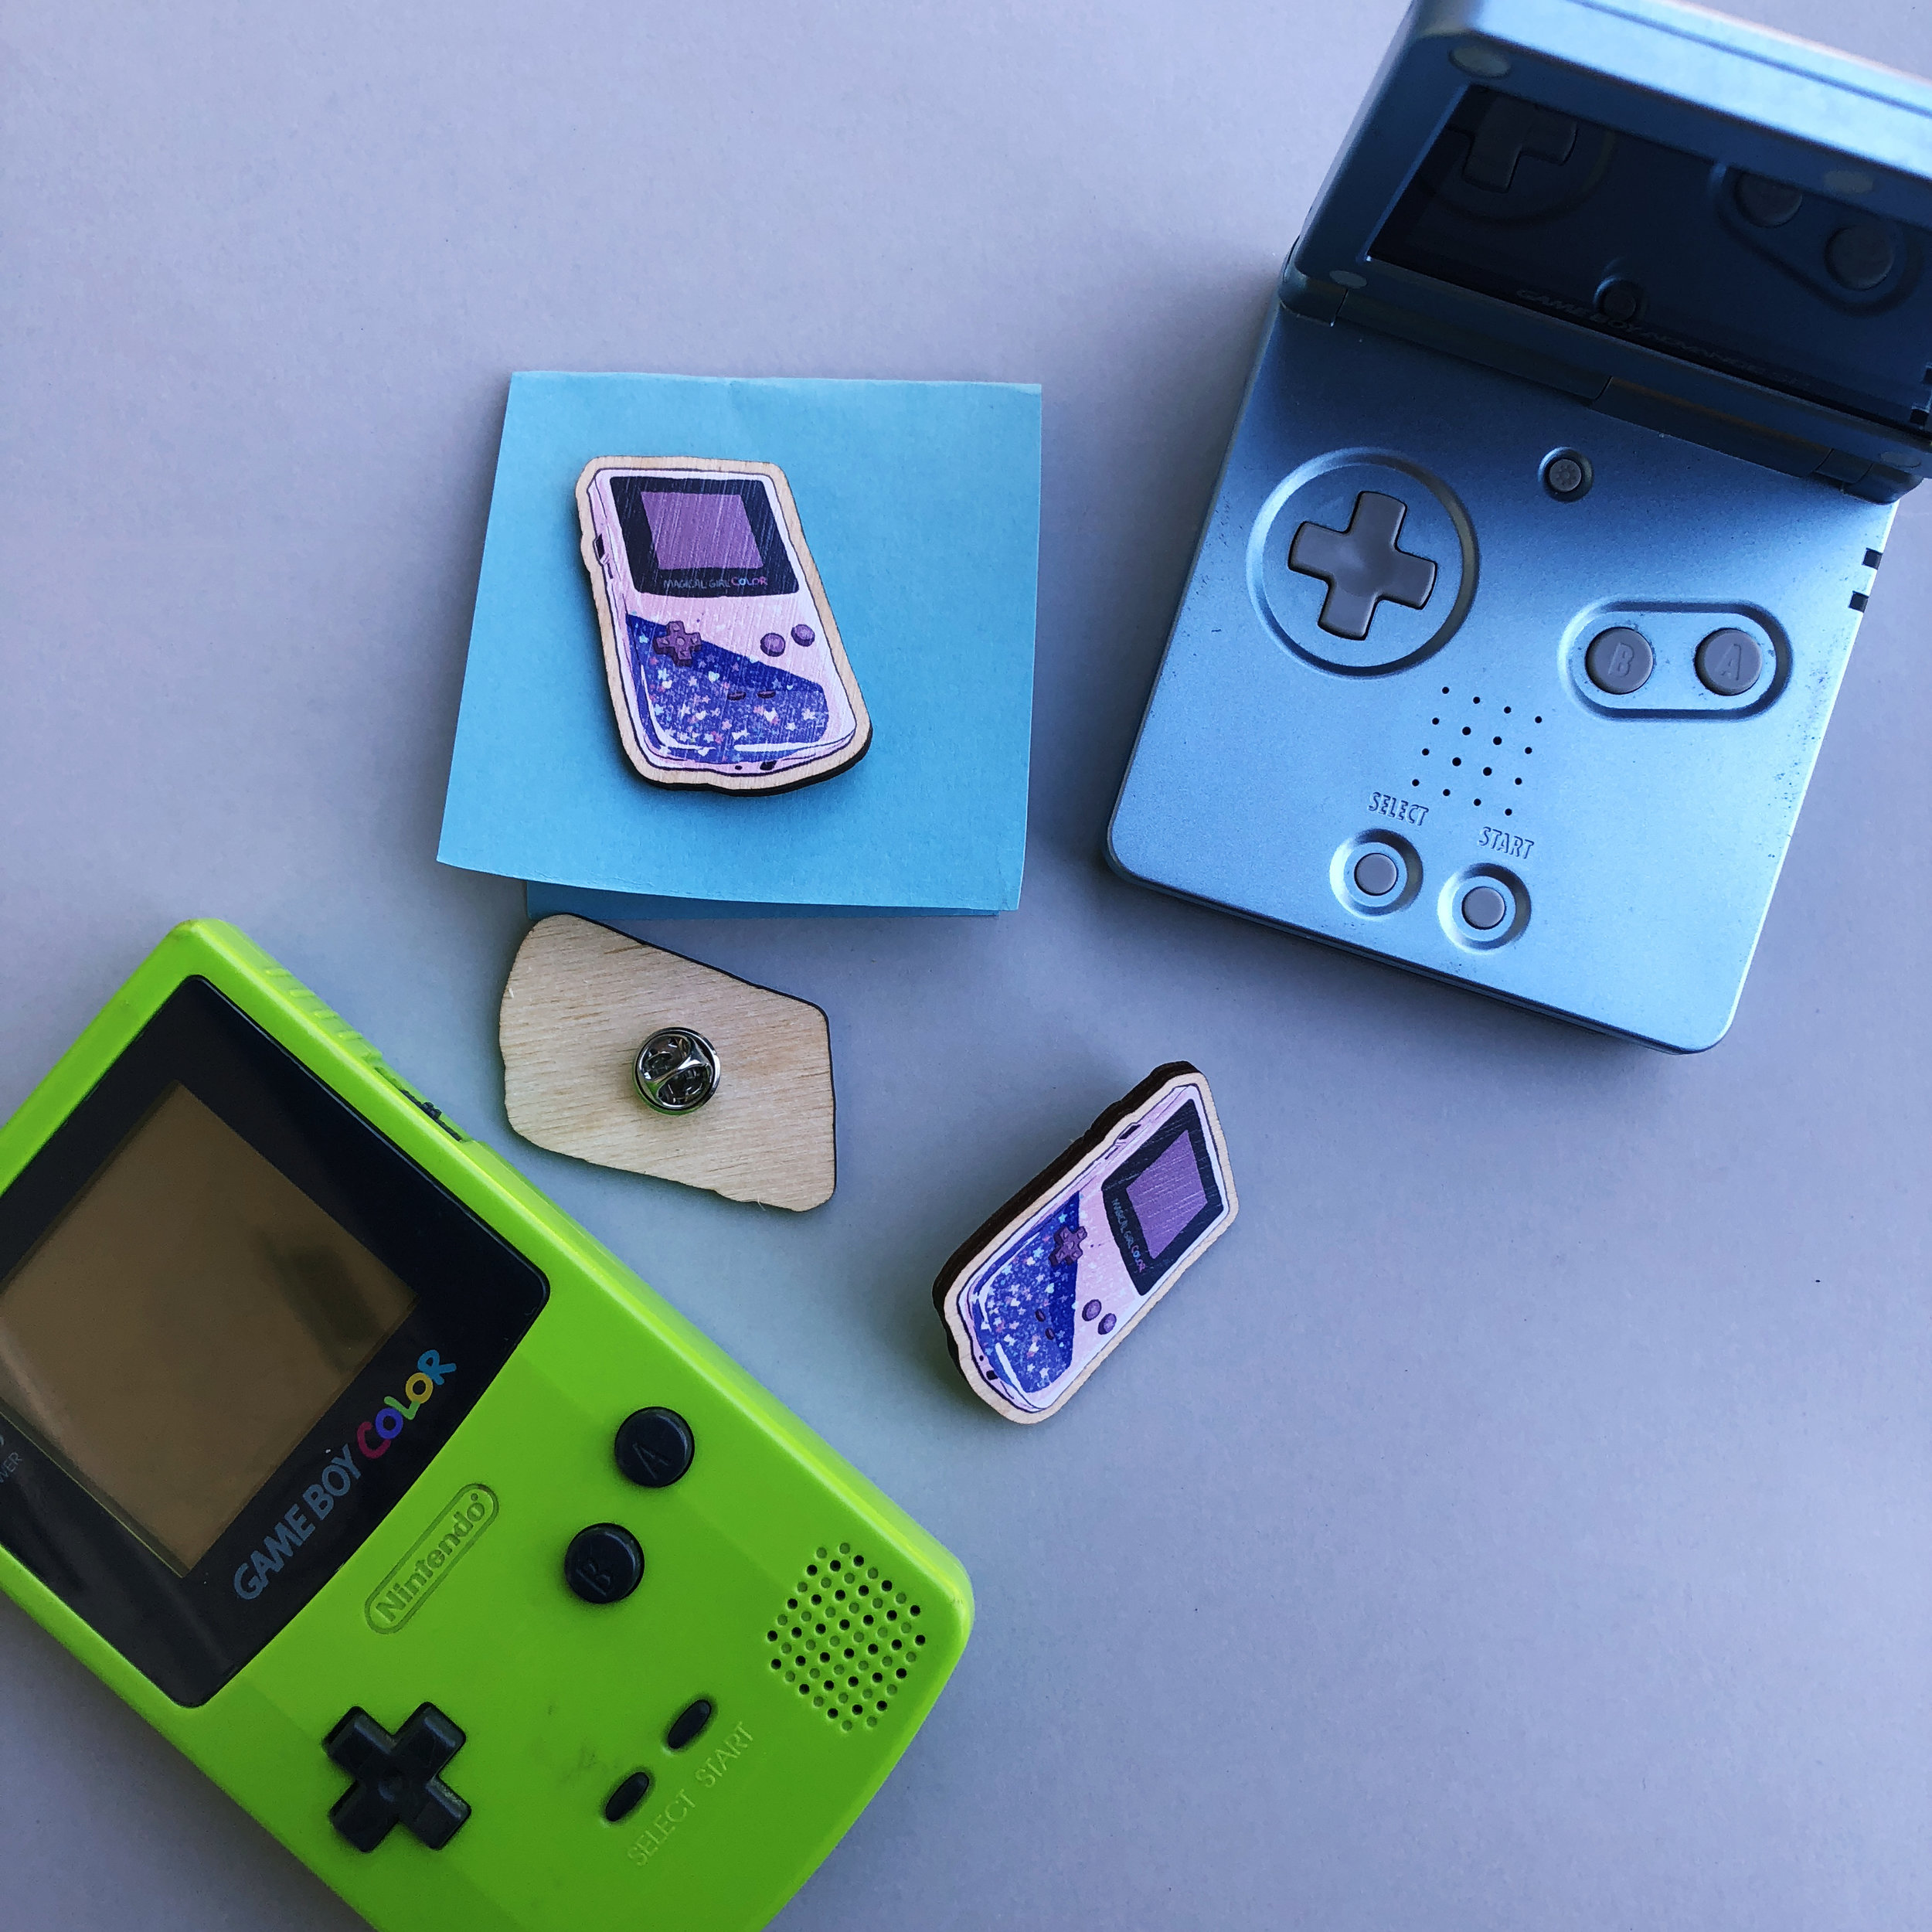 gameboy pin 1.JPG